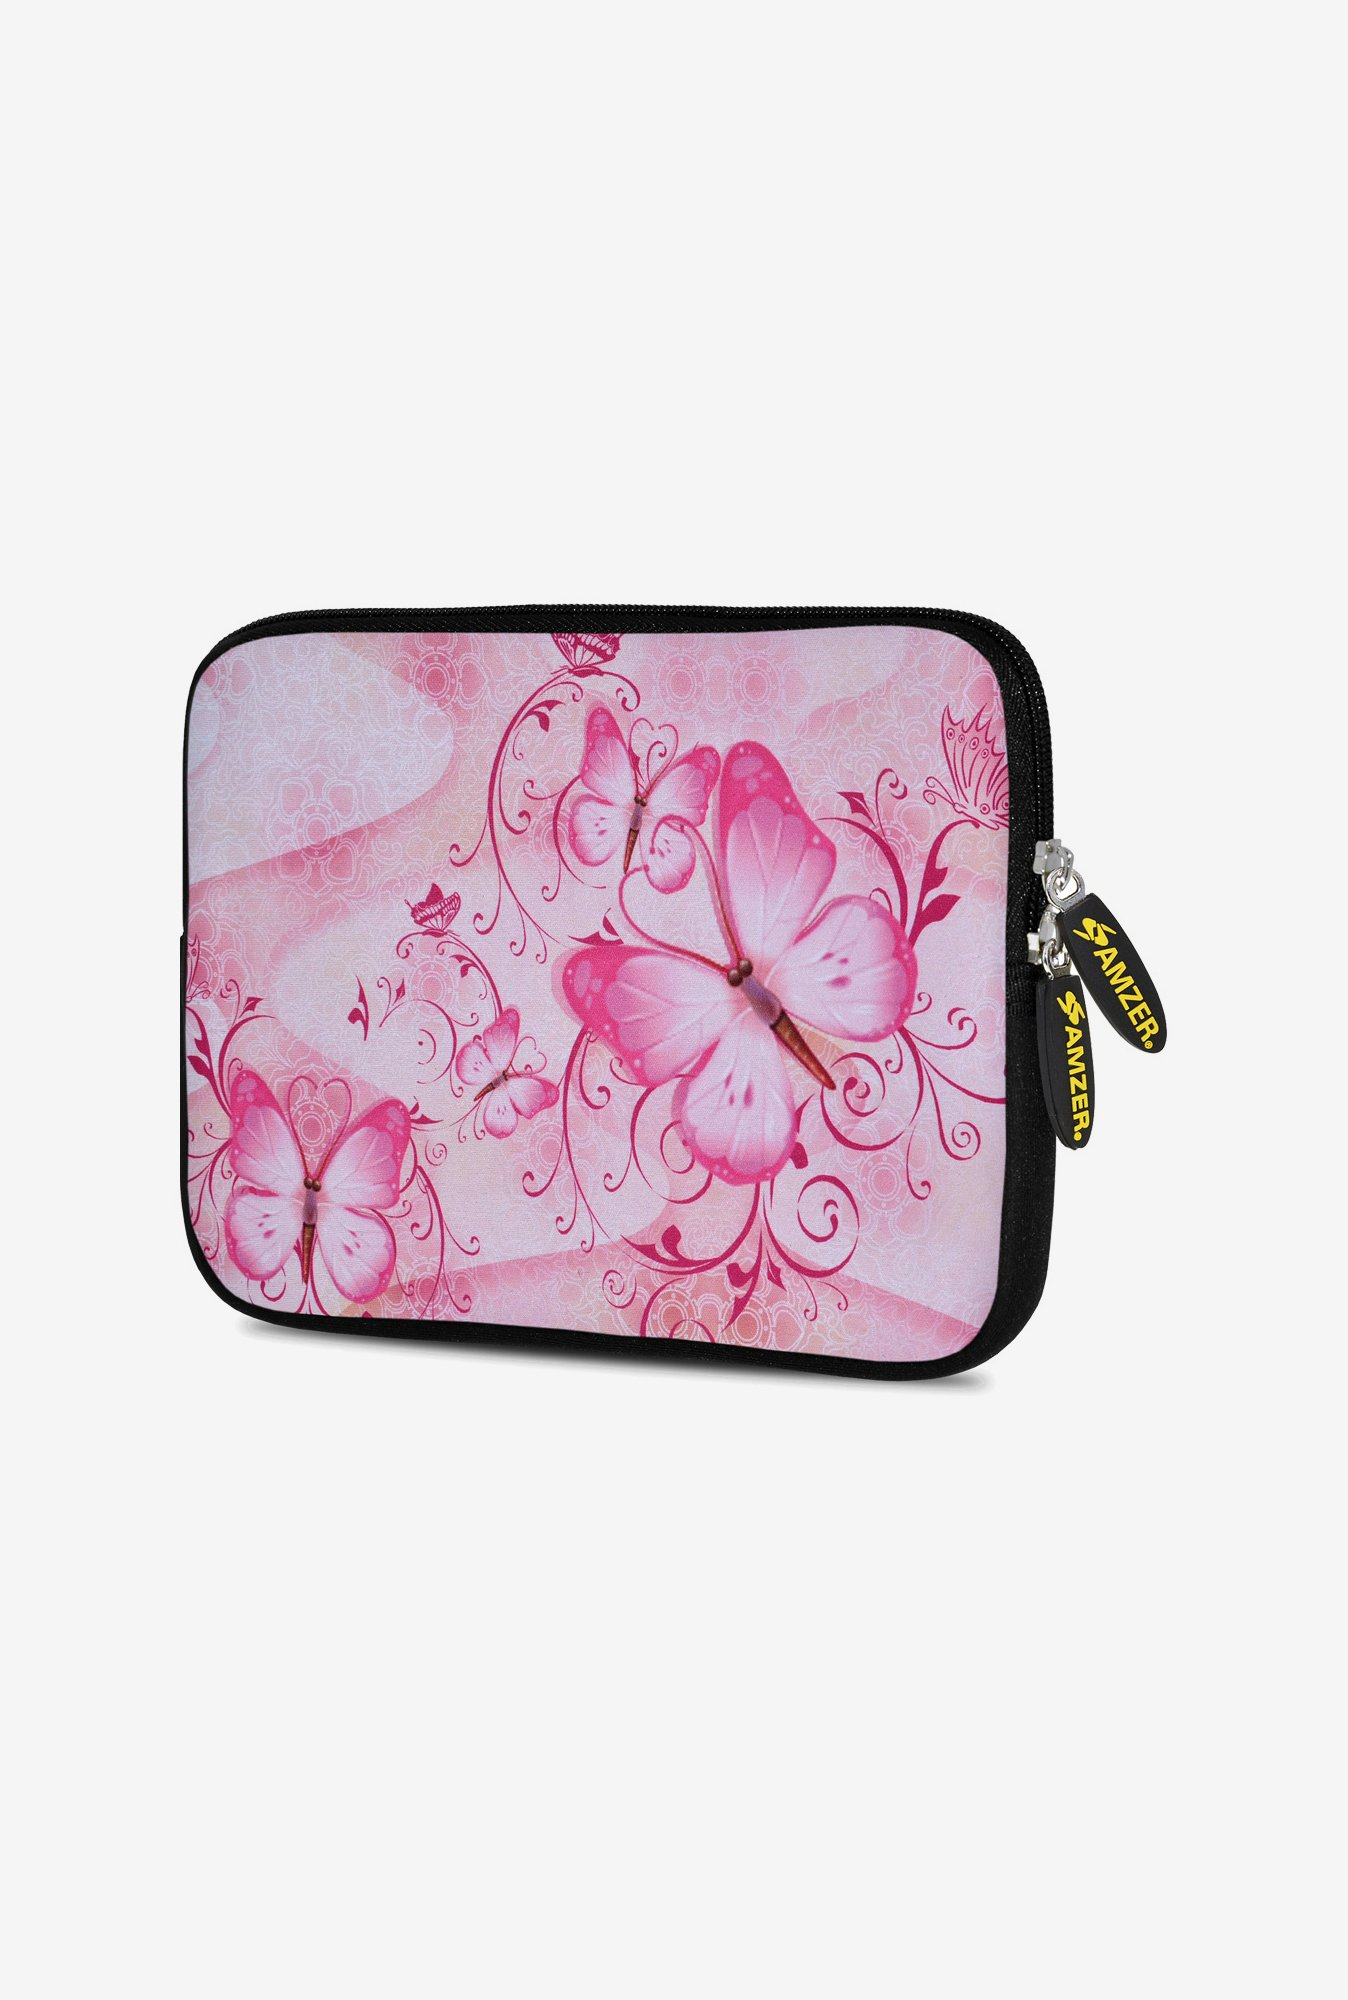 Amzer 10.5 Inch Neoprene Sleeve - Pinkspray Butterfly